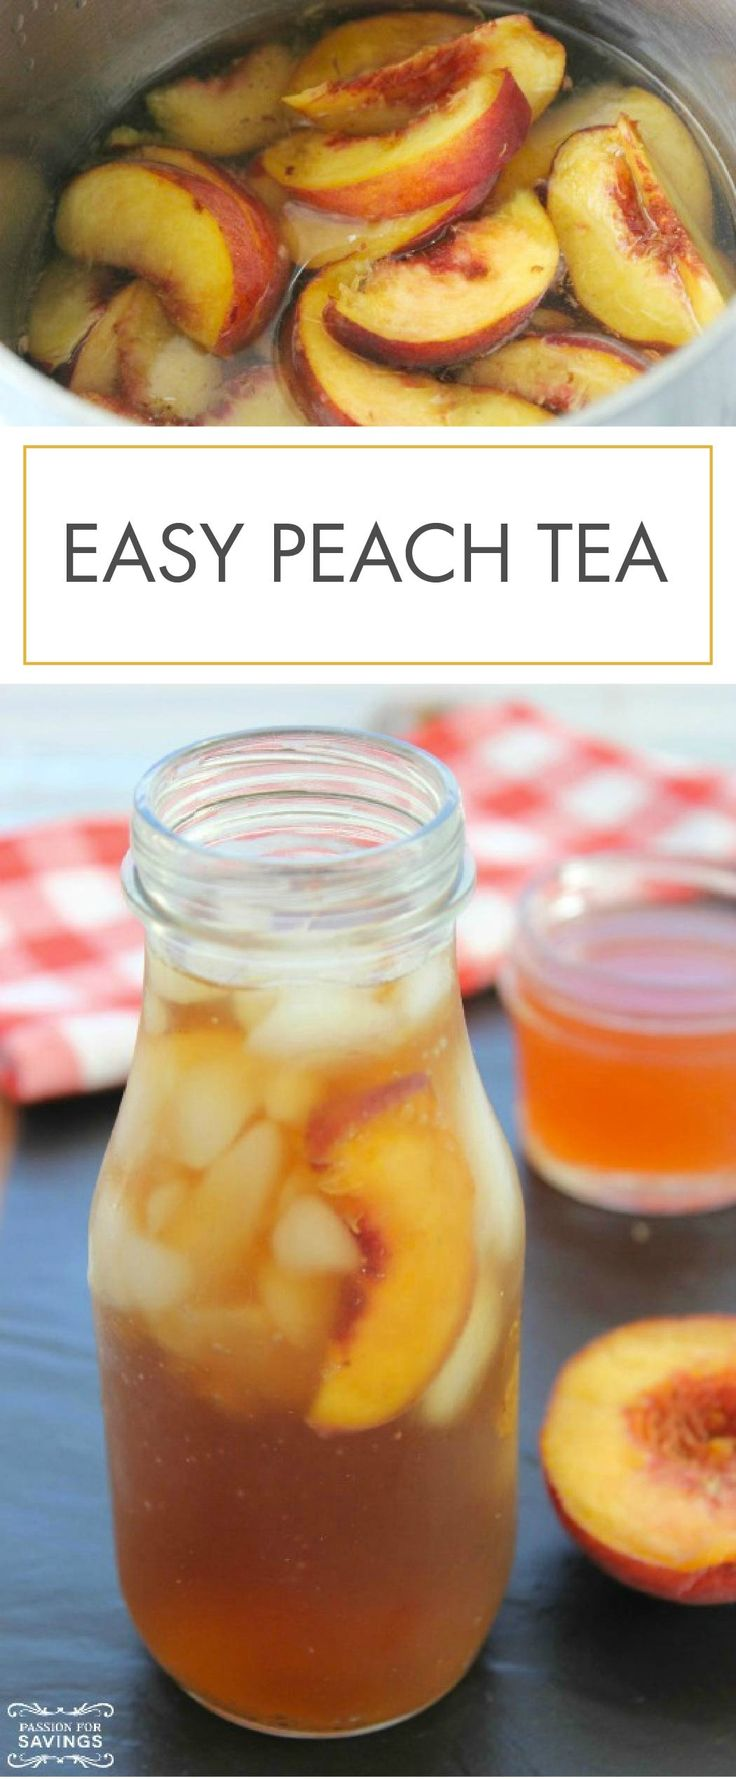 This Easy Peach Tea is the perfect drink recipe for grilling out on sunny days with friends! It's so refreshing, and you will love the chunks of fresh fruit. illdrinktothat